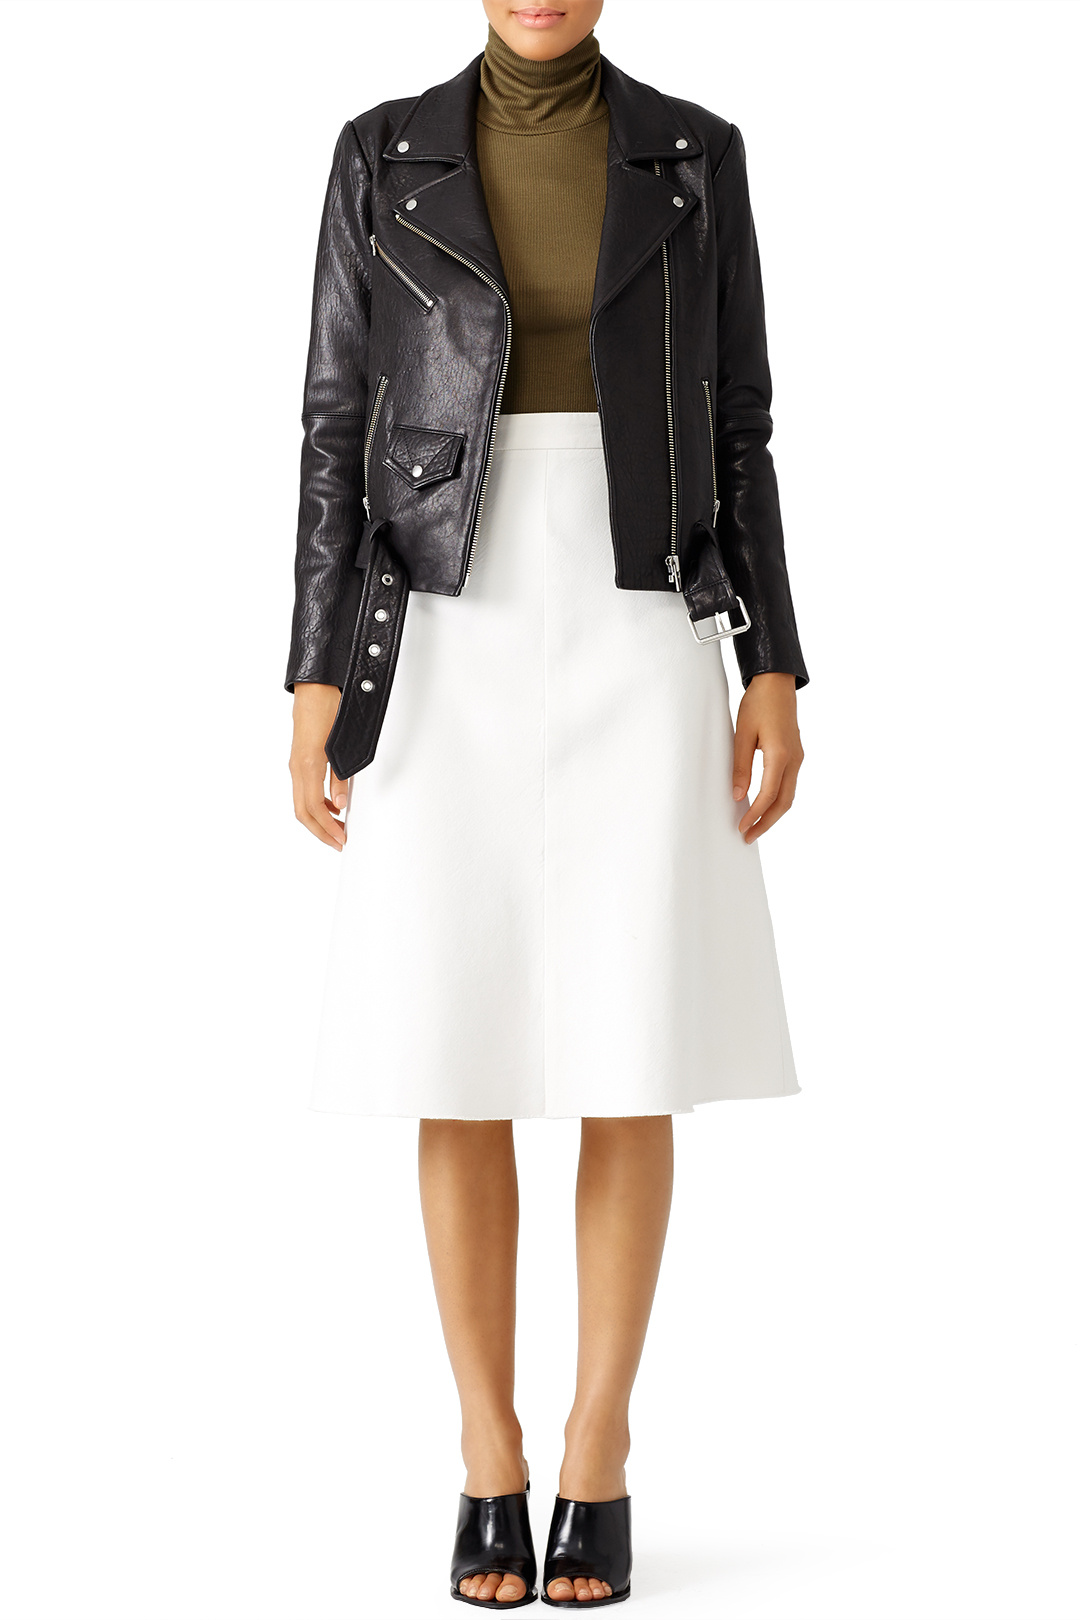 Black Jayne Classic Moto Jacket from Rent the Runway Unlimited program. You can also purchase one of the beauties online or in store at Nordstrom.